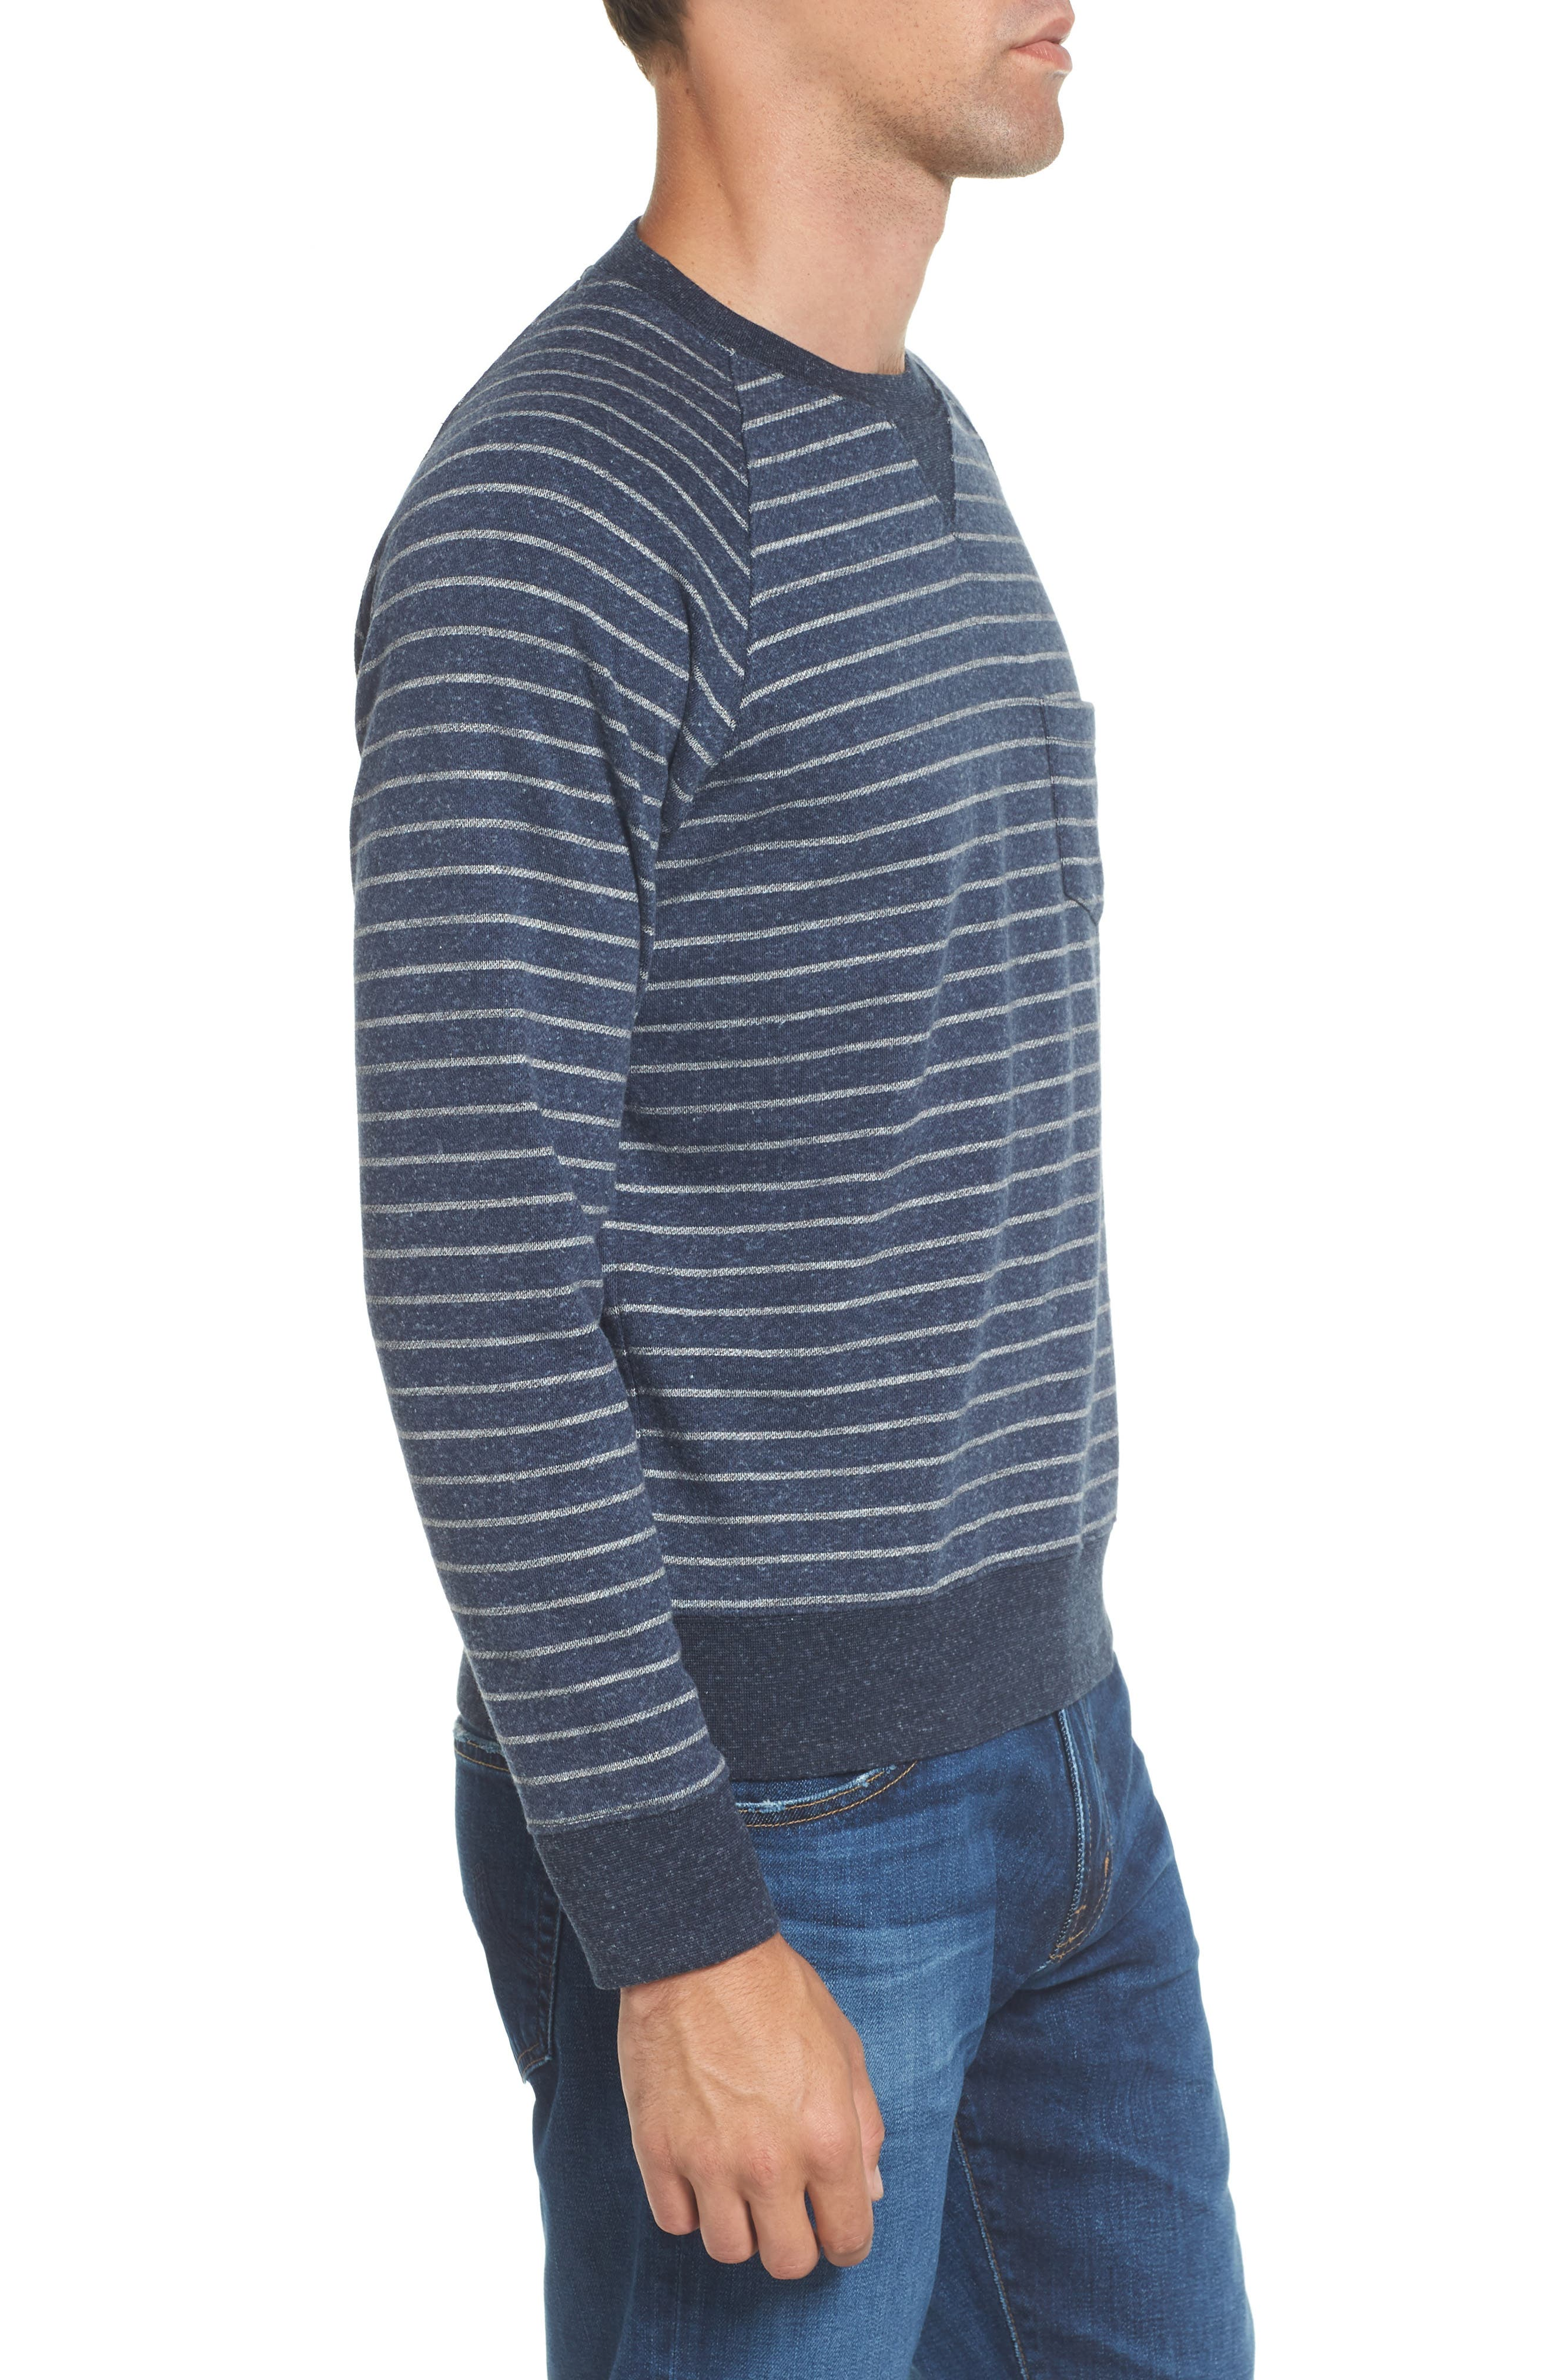 Palmer Modern Fit Athletic Stripe Sweatshirt,                             Alternate thumbnail 4, color,                             Navy/ Gray Heather